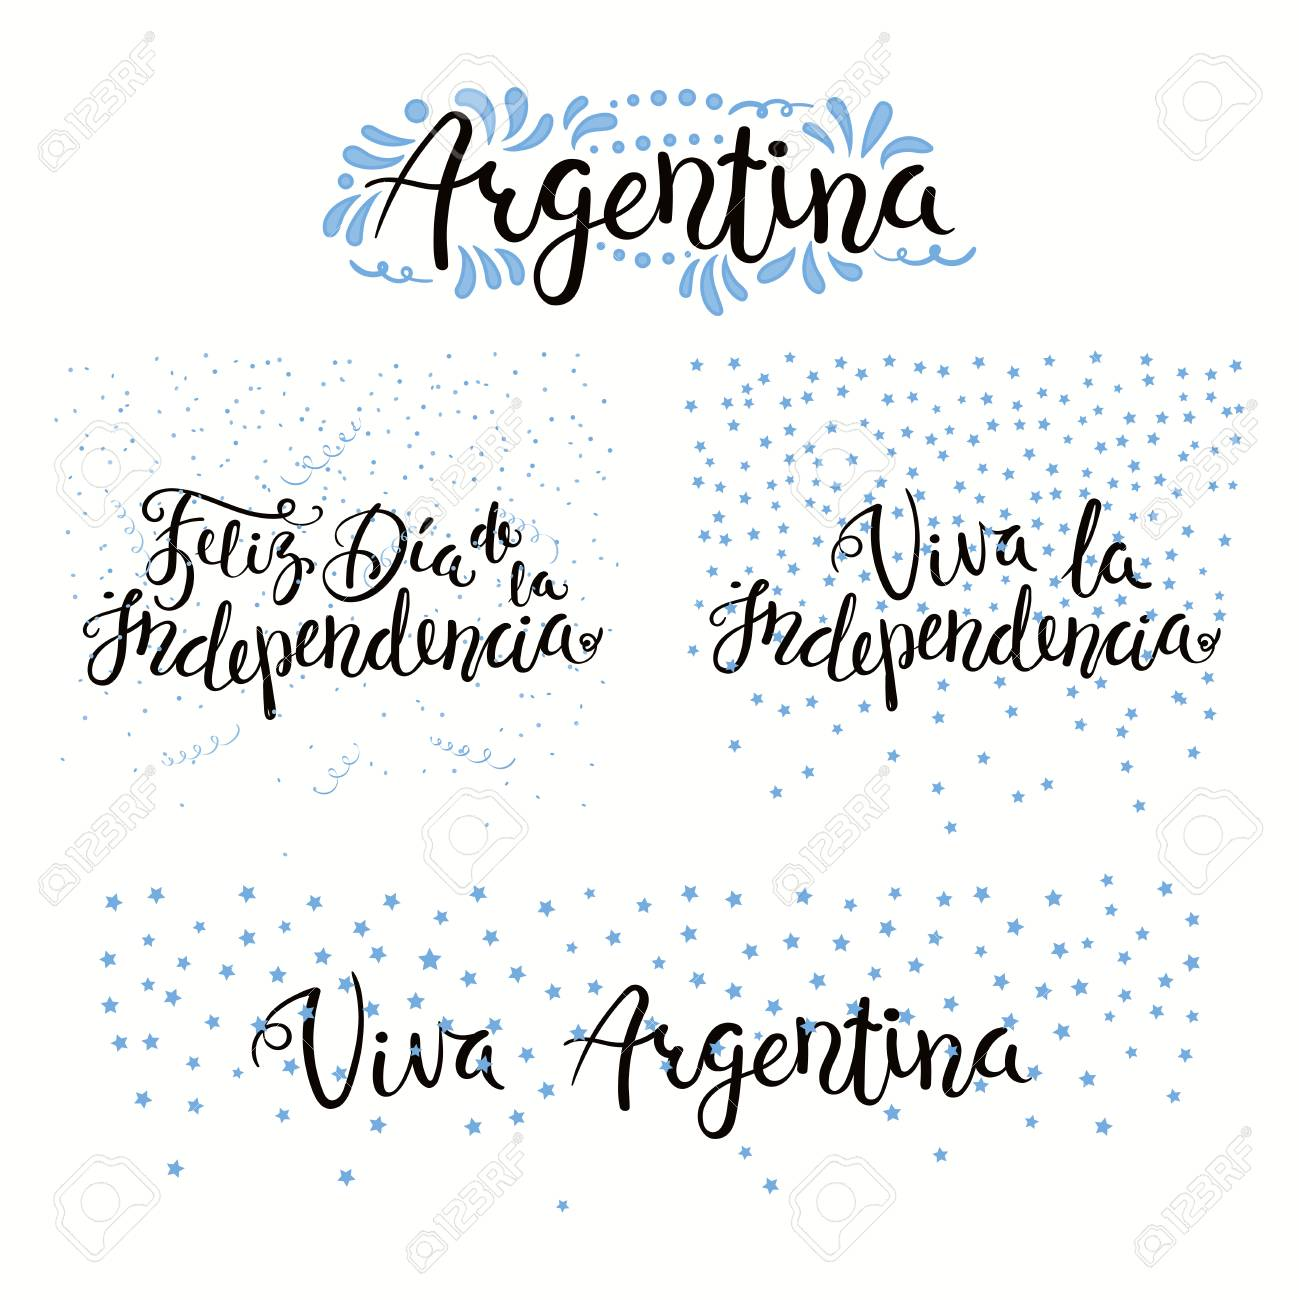 Set Of Hand Written Calligraphic Spanish Lettering Quotes For